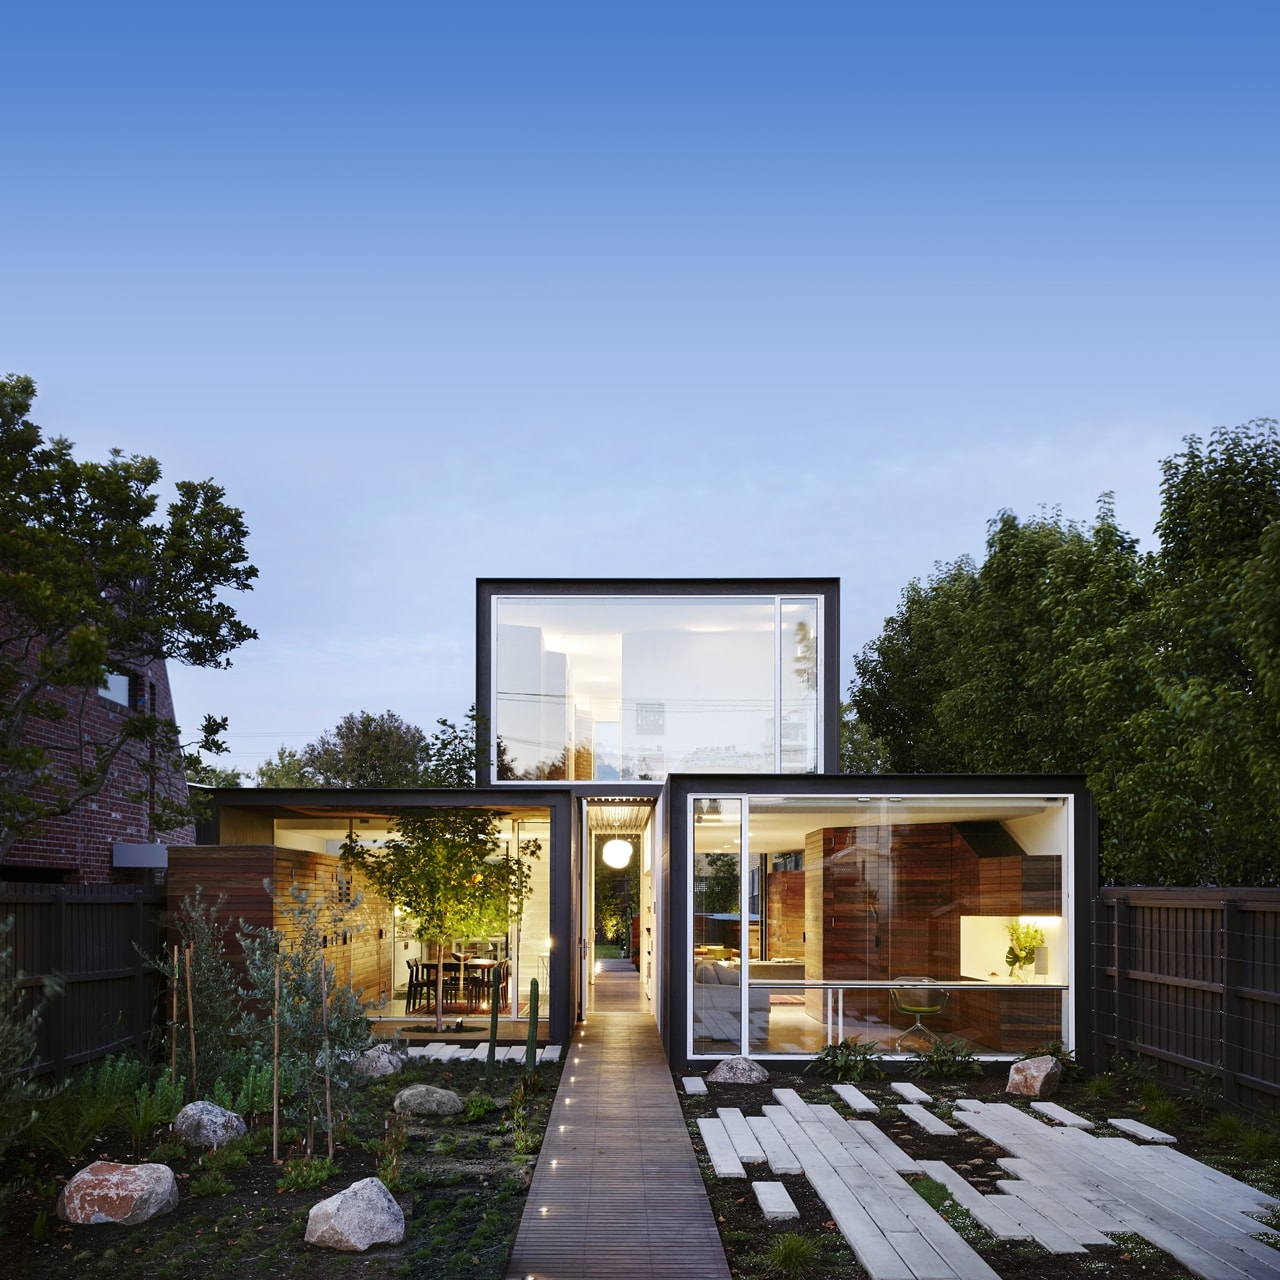 Open House By Austin Maynard Architects